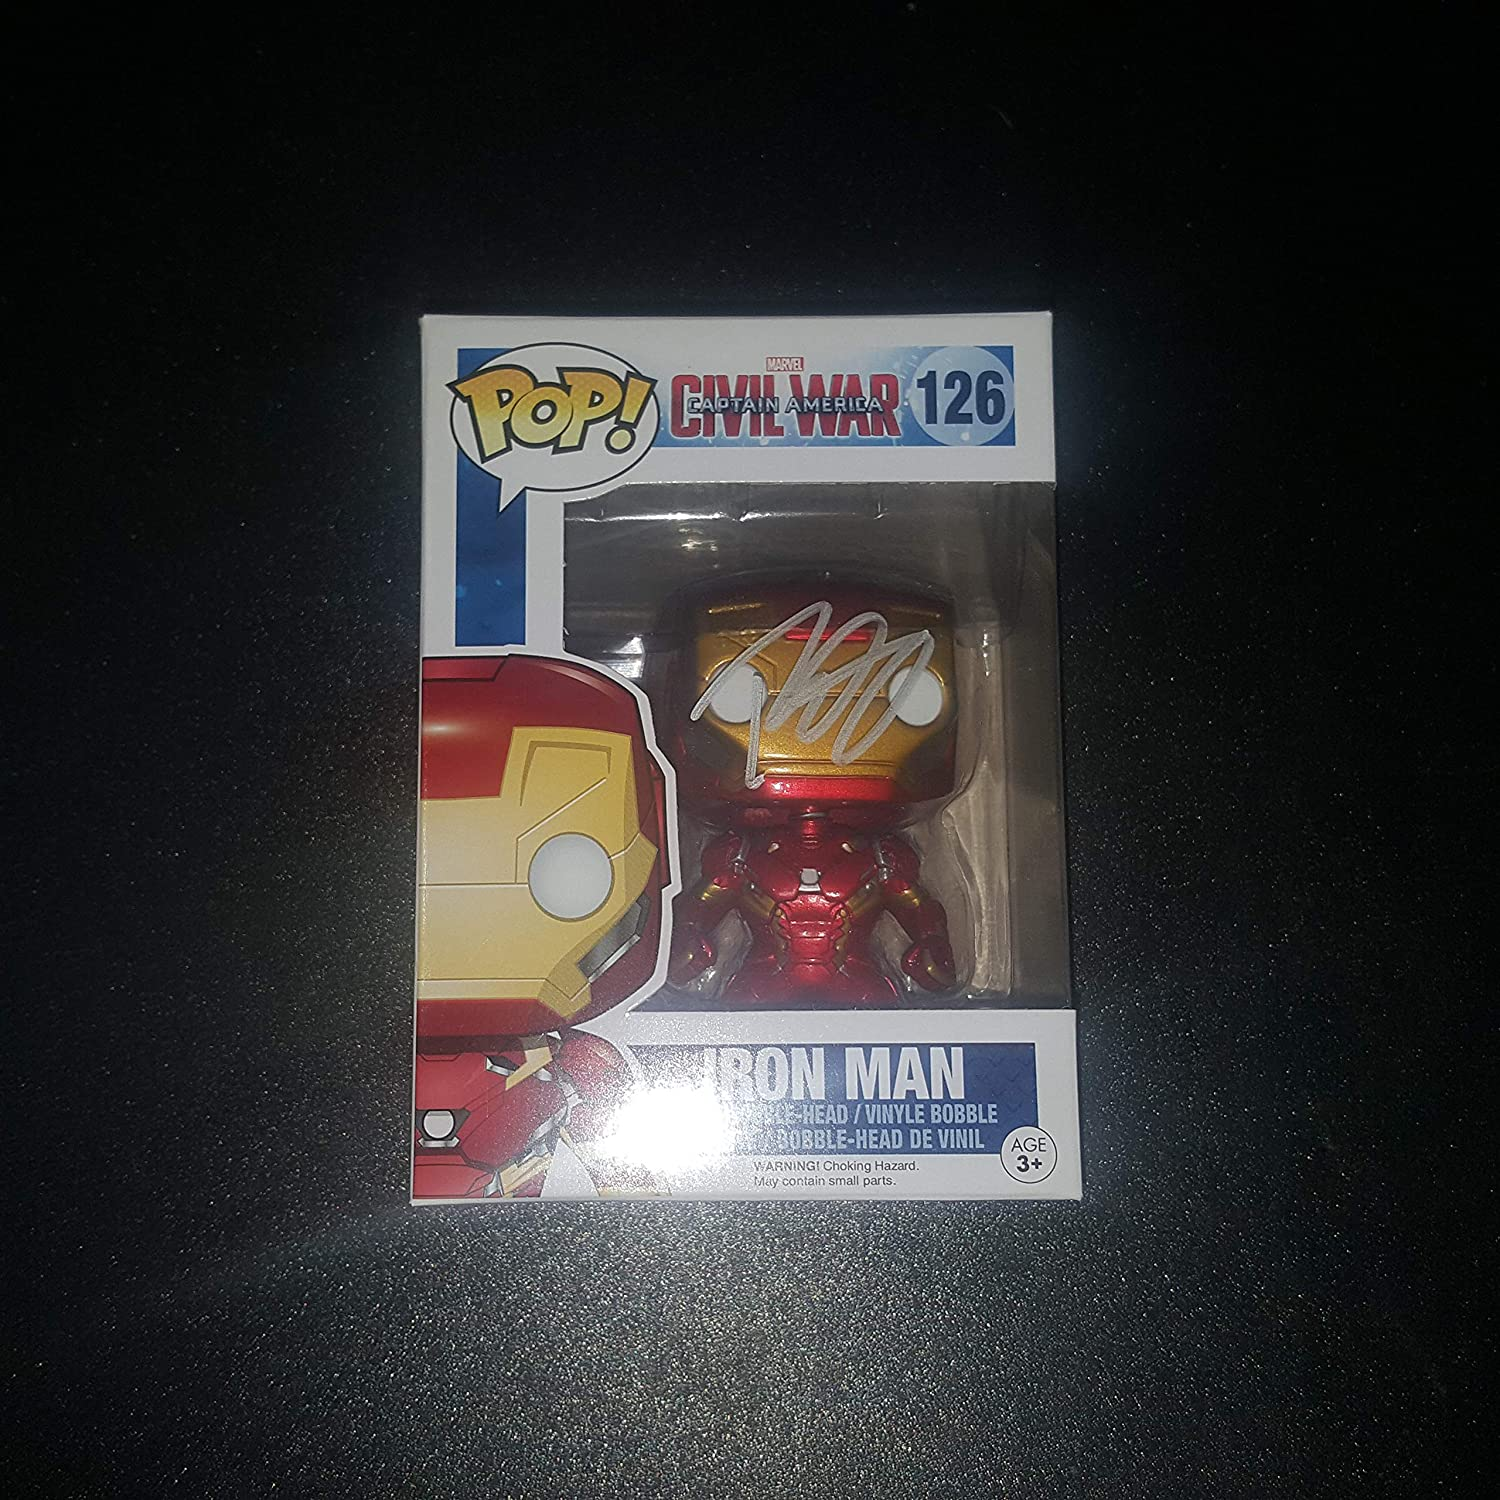 Robert Downey Jr. - Autographed Signed IRON MAN FUNKO POP 126 Vinyl Figure - Captain America Civil War - Marvel AVENGERS